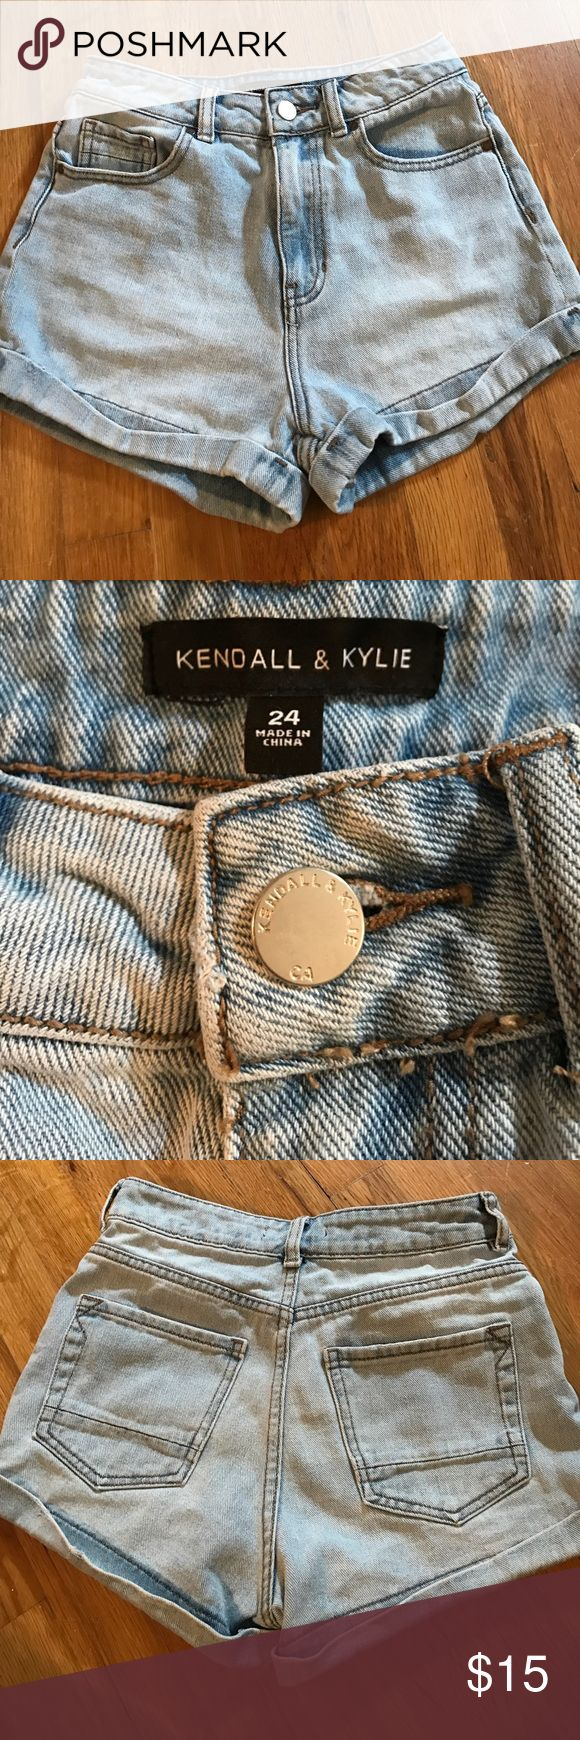 Kendall and Kylie High Wasted Shorts High wasted light wash denim shorts. Size 24. Brand is Kendall and Kylie. Kendall & Kylie Shorts Jean Shorts